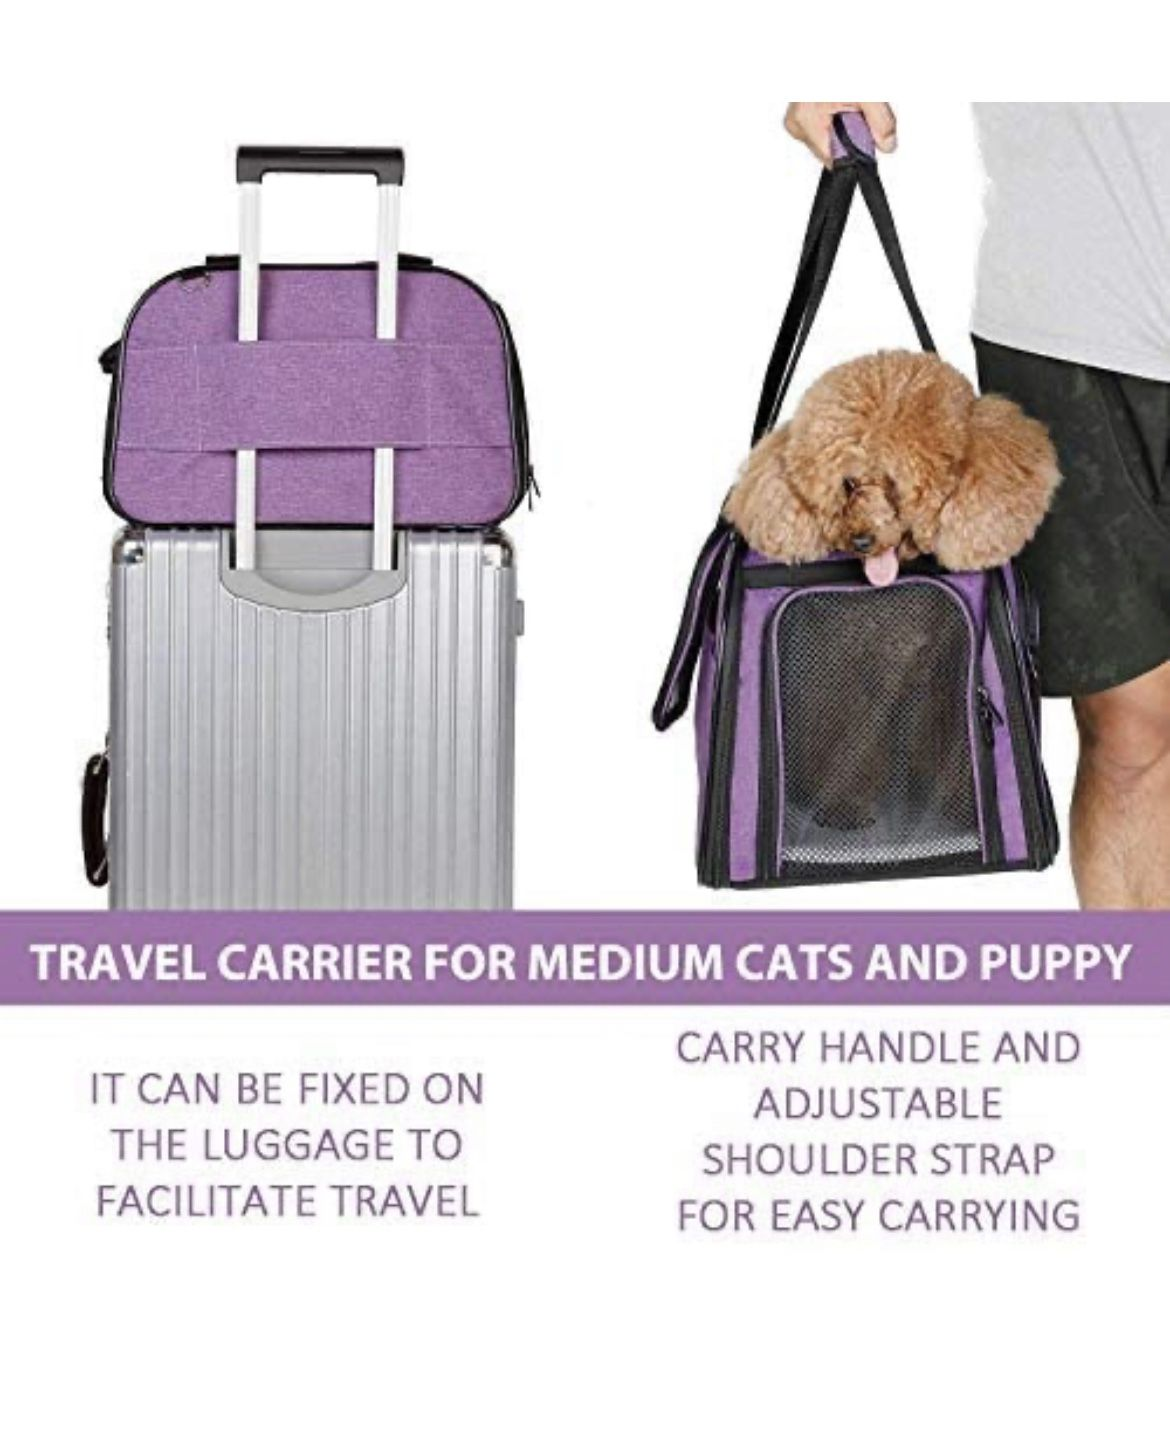 Pet Carrier for Dog and Cats, Airline Approved Soft-Sided Pet Travel Carrier,Portable Kennel for Puppies